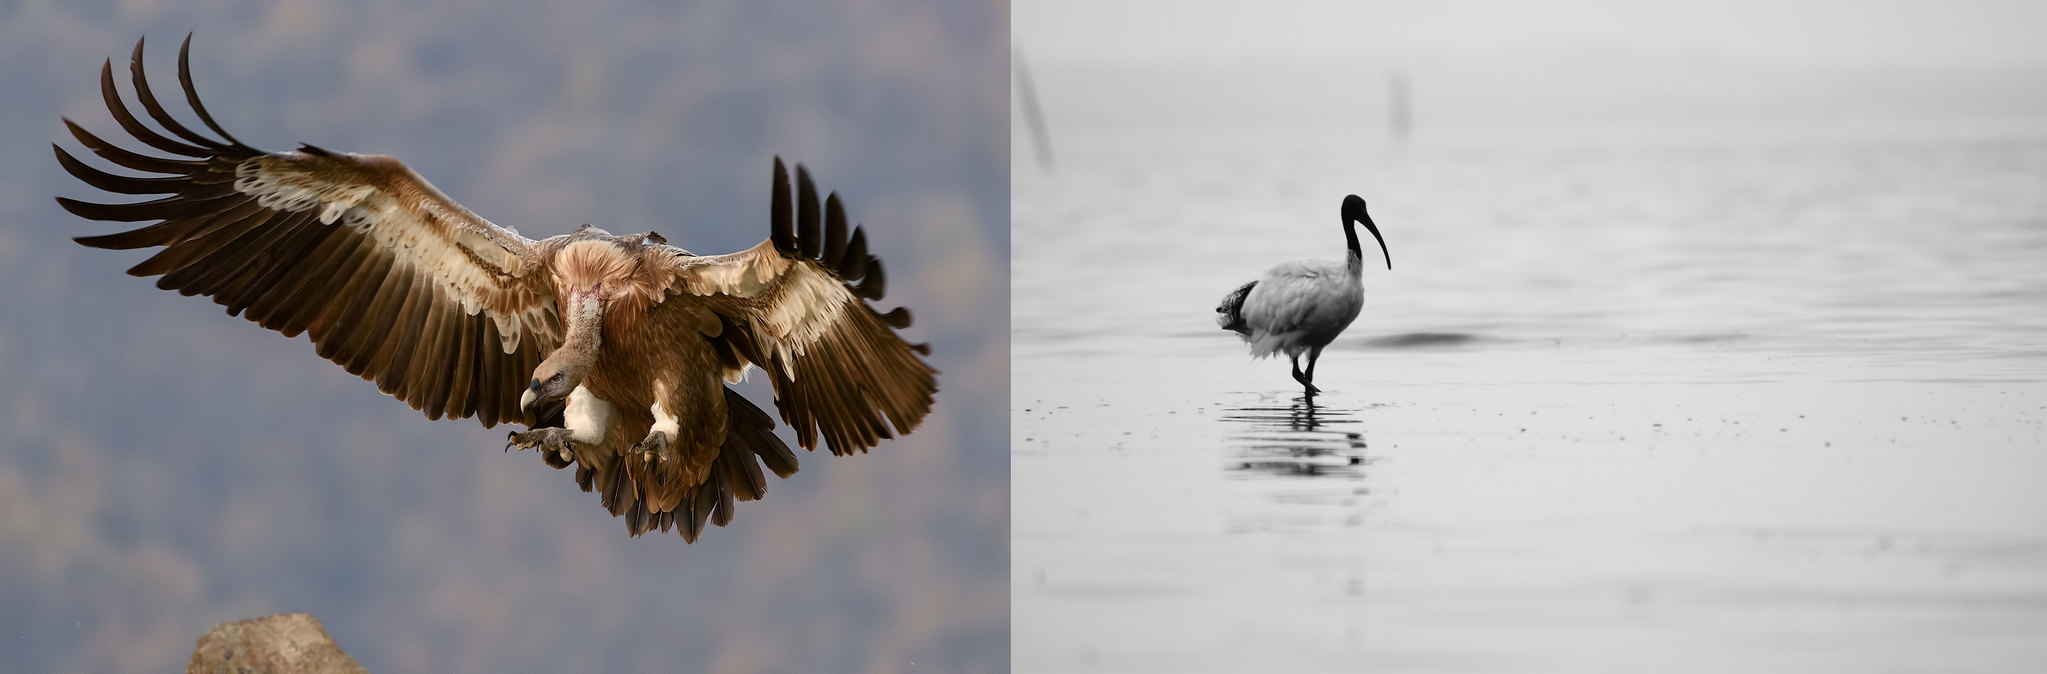 Fotos con digiscoping